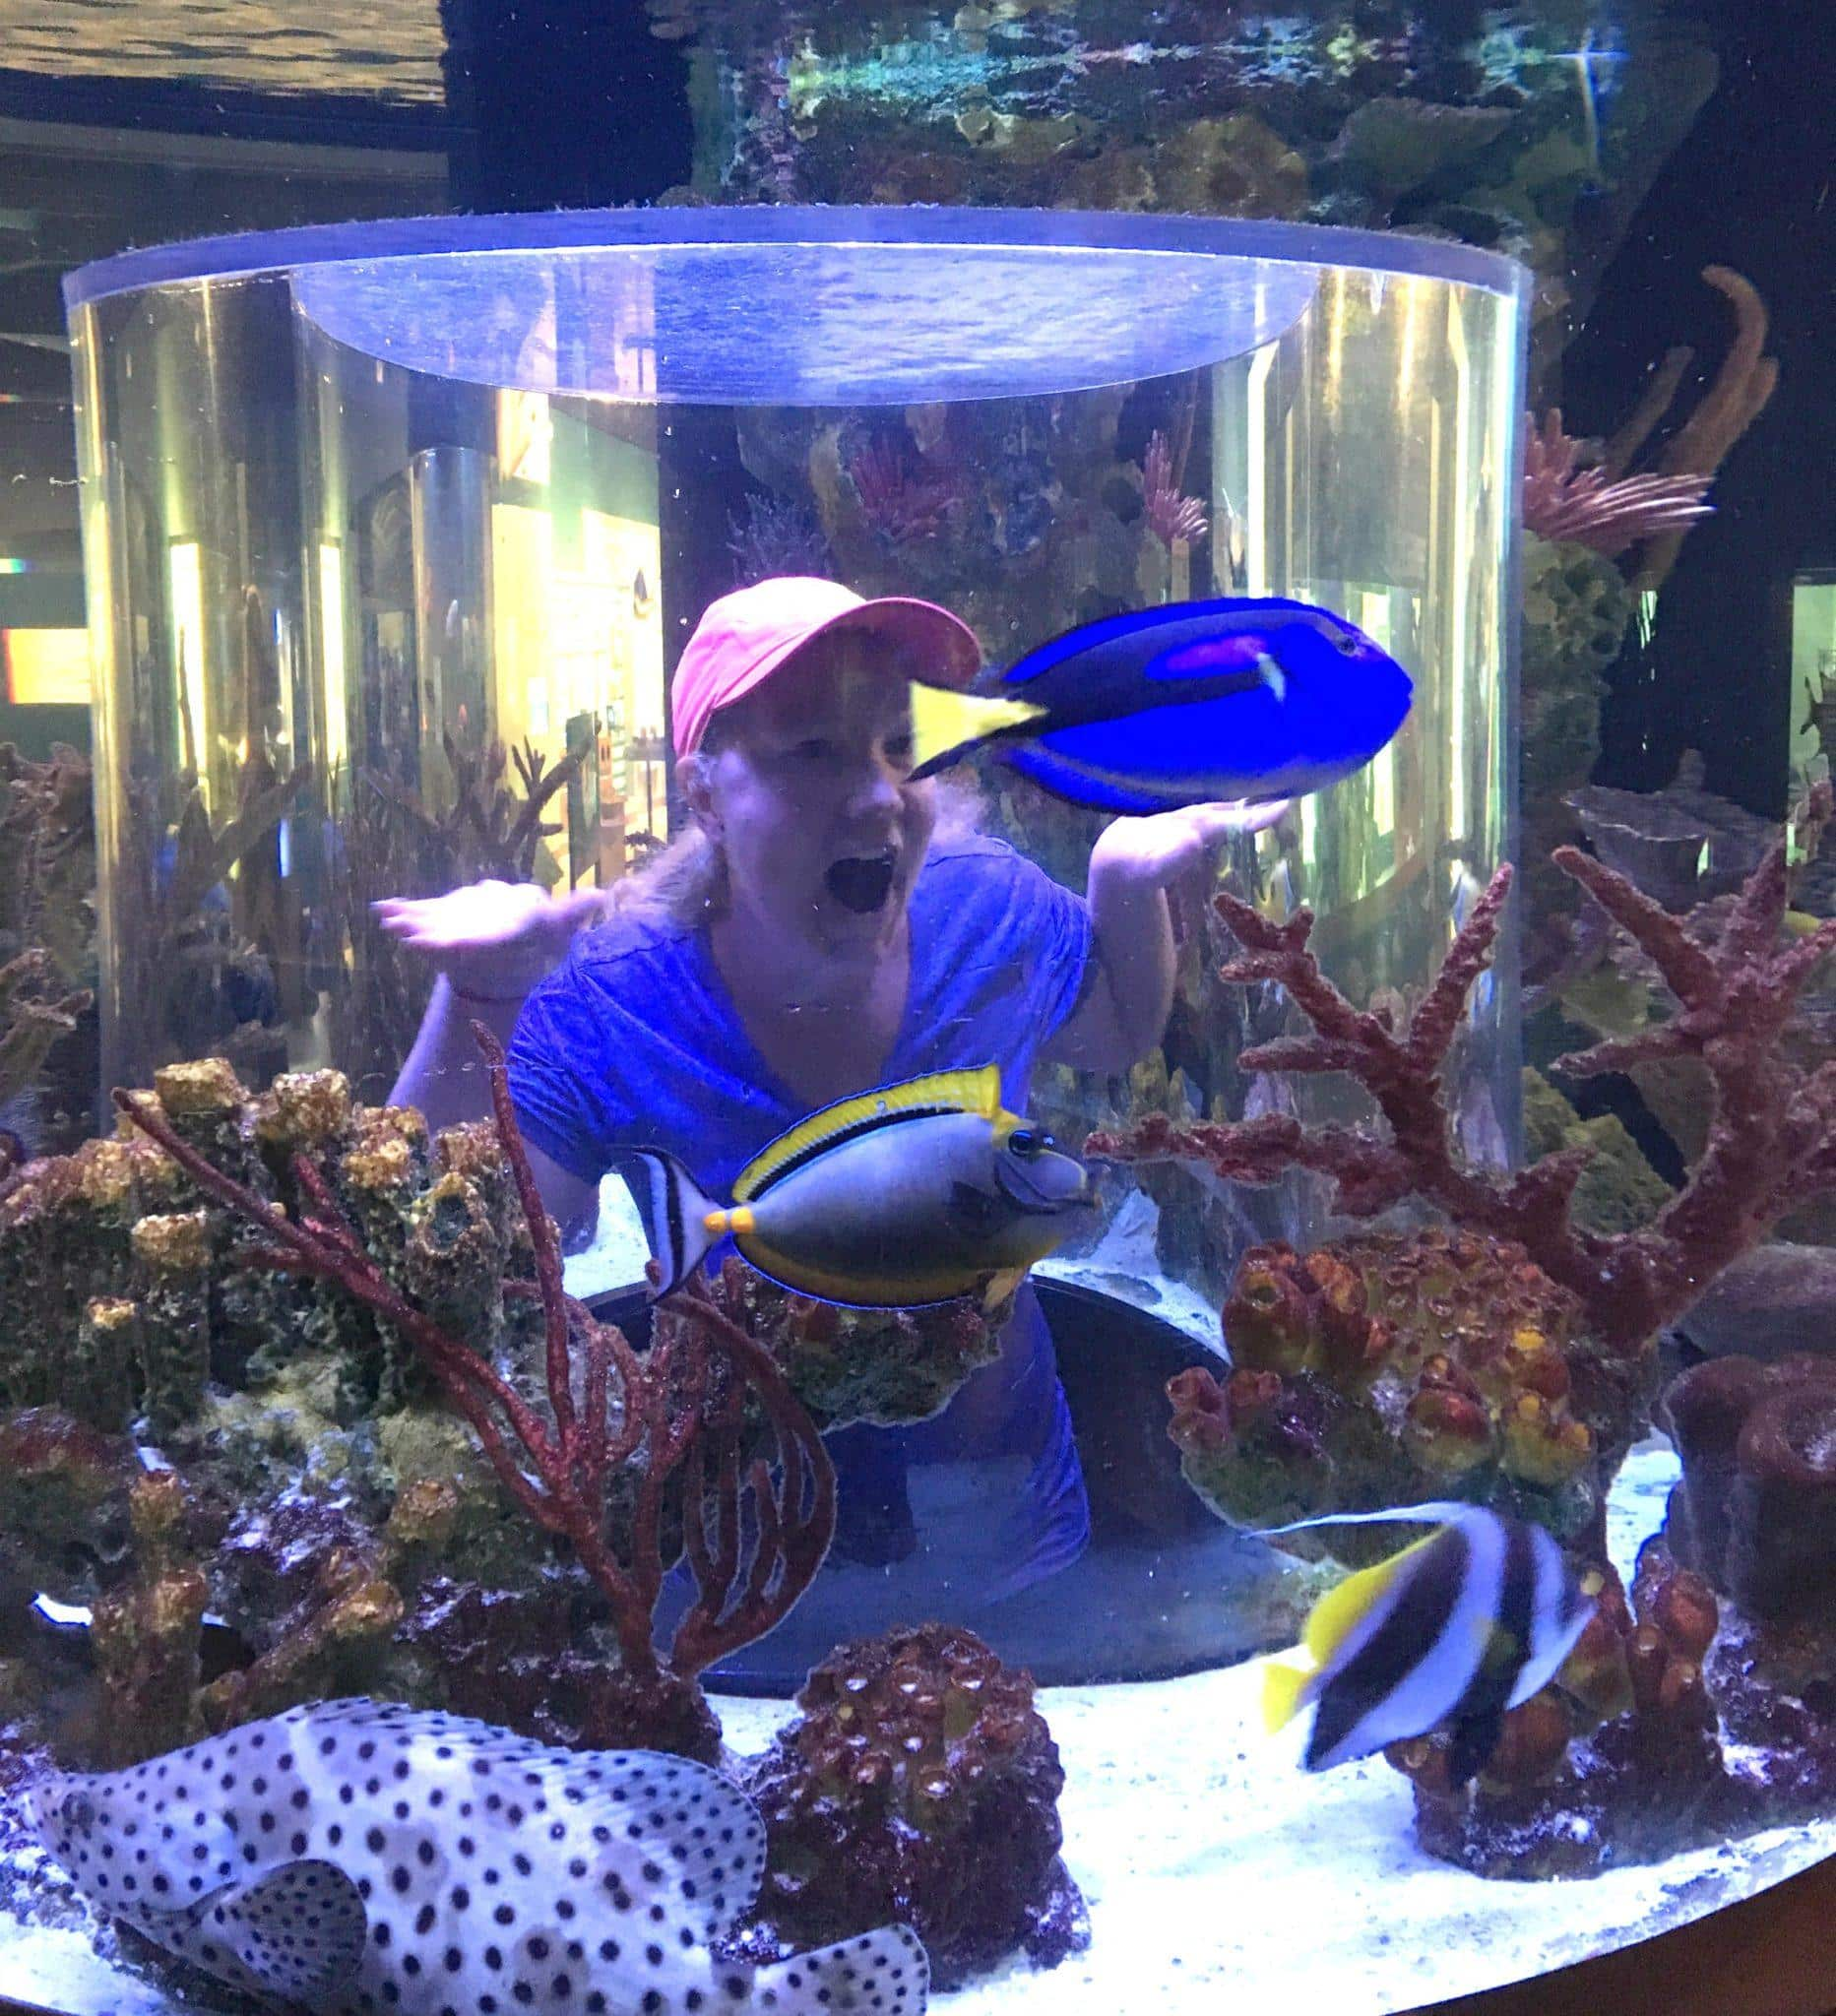 Finding Dory at the South Florida Science Center and Aquarium ~ Fun Things to Do in Florida's Palm Beach County with Kids